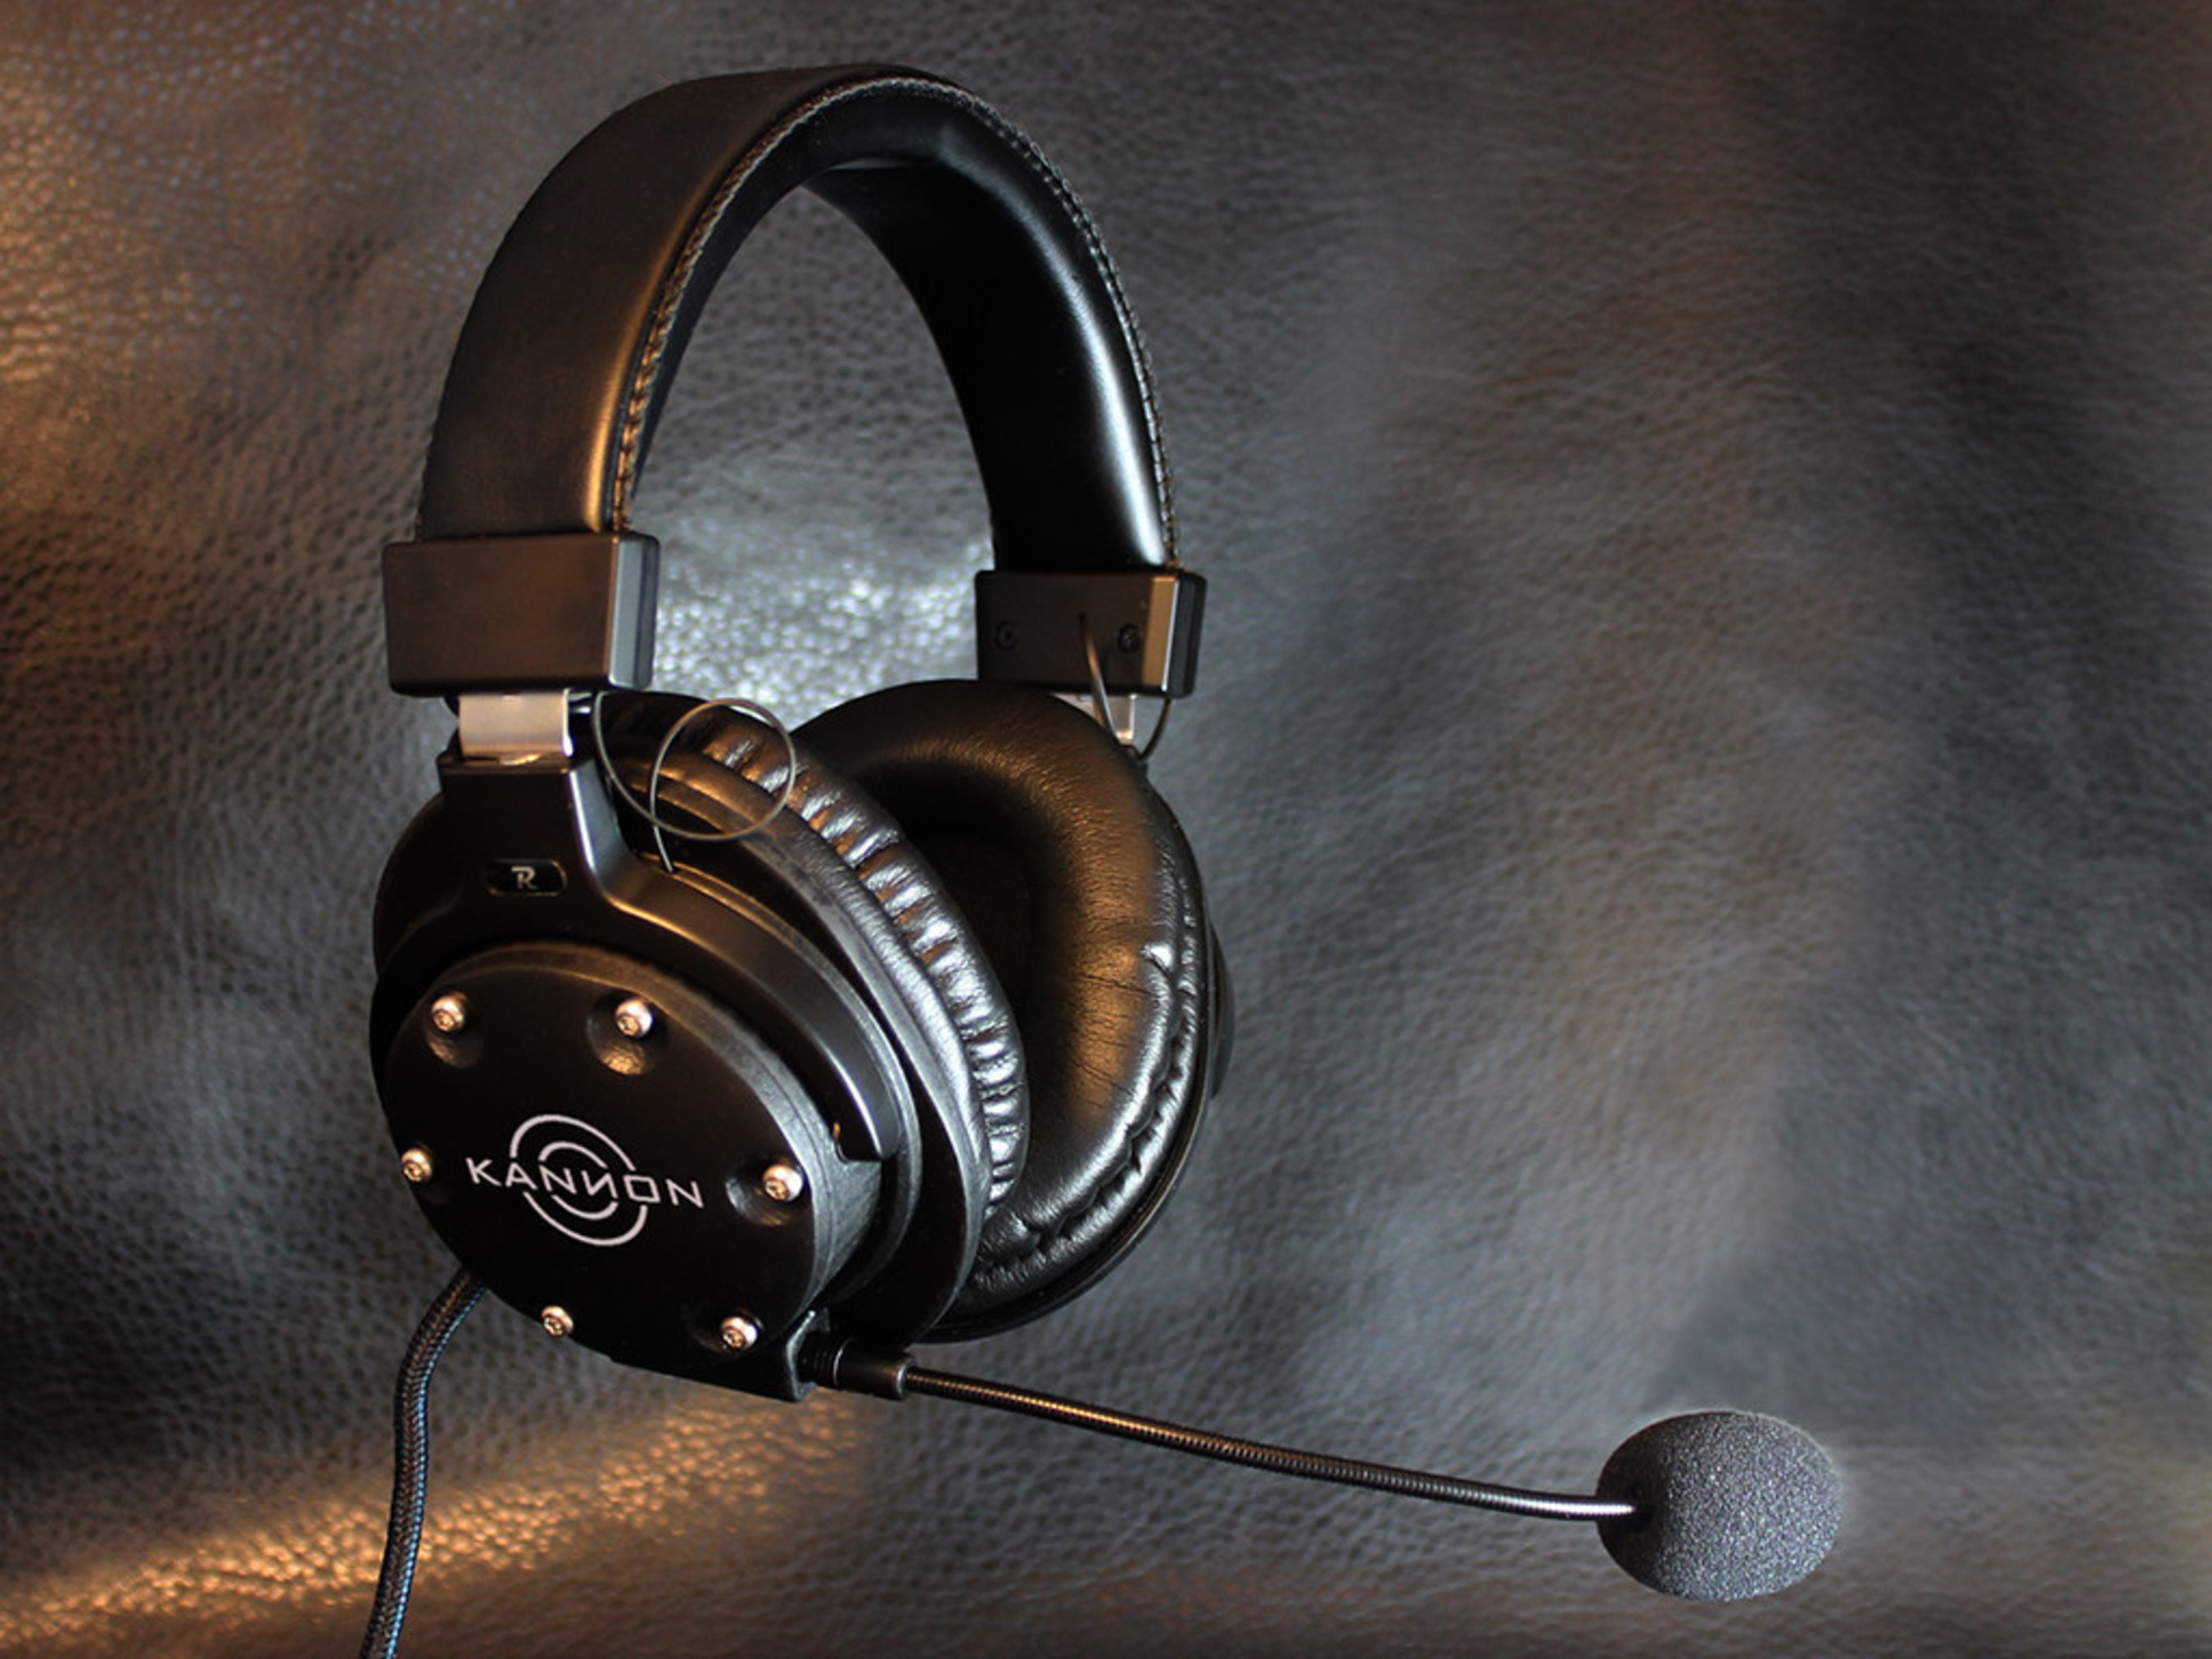 Taction Technology Launches Bass-Rich Haptic Headphone